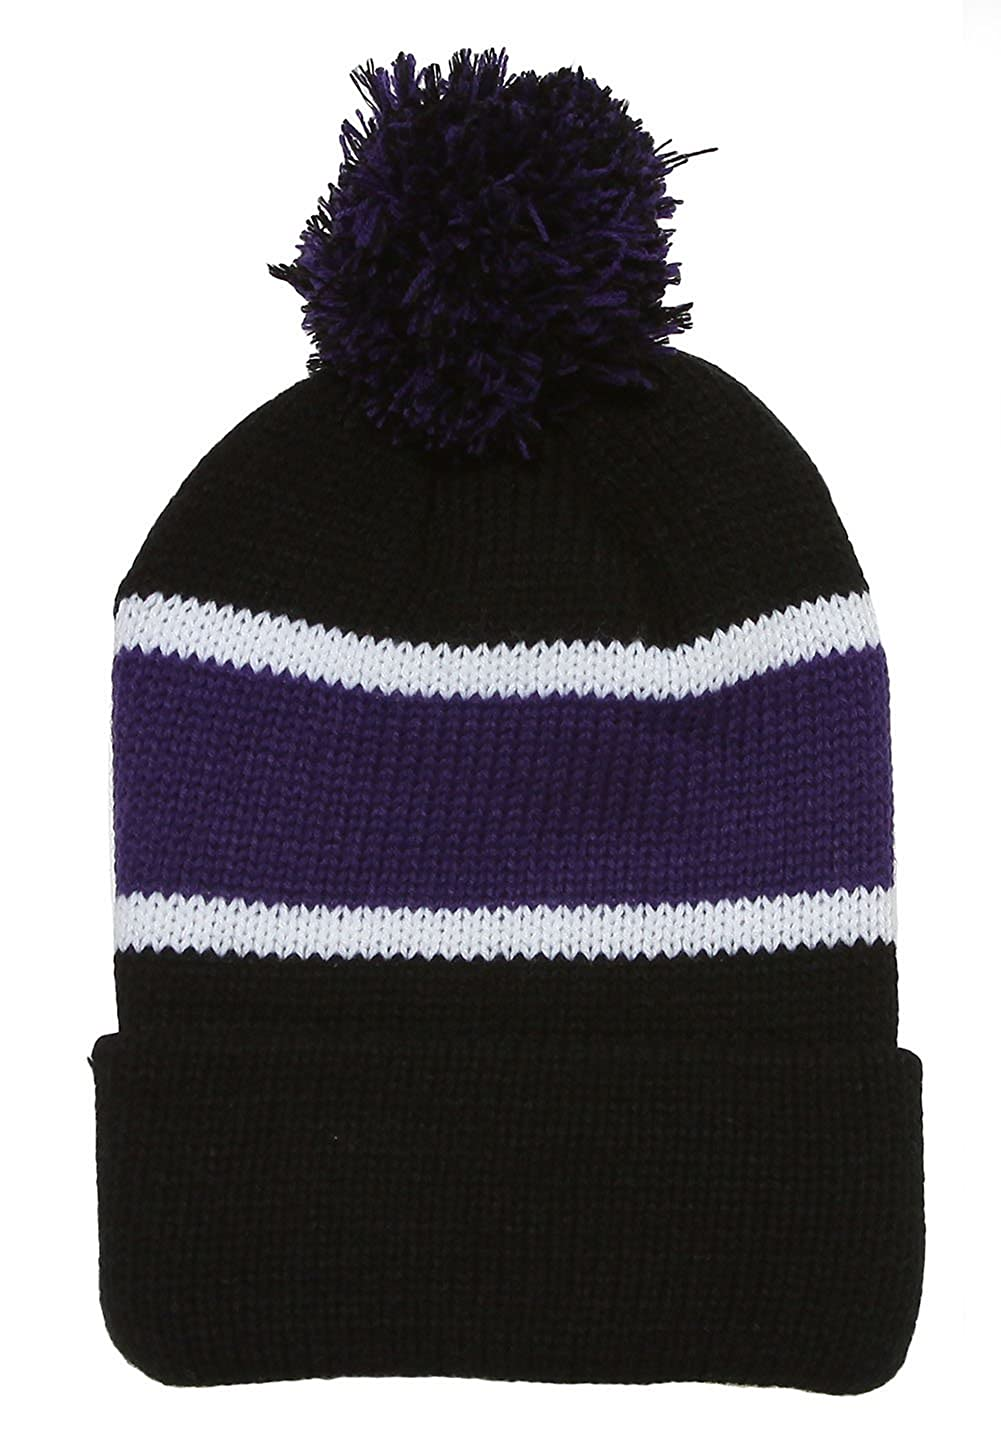 420d09ad323 TOP HEADWEAR Winter Striped Beanie with Pom - Black Green at Amazon Men s  Clothing store